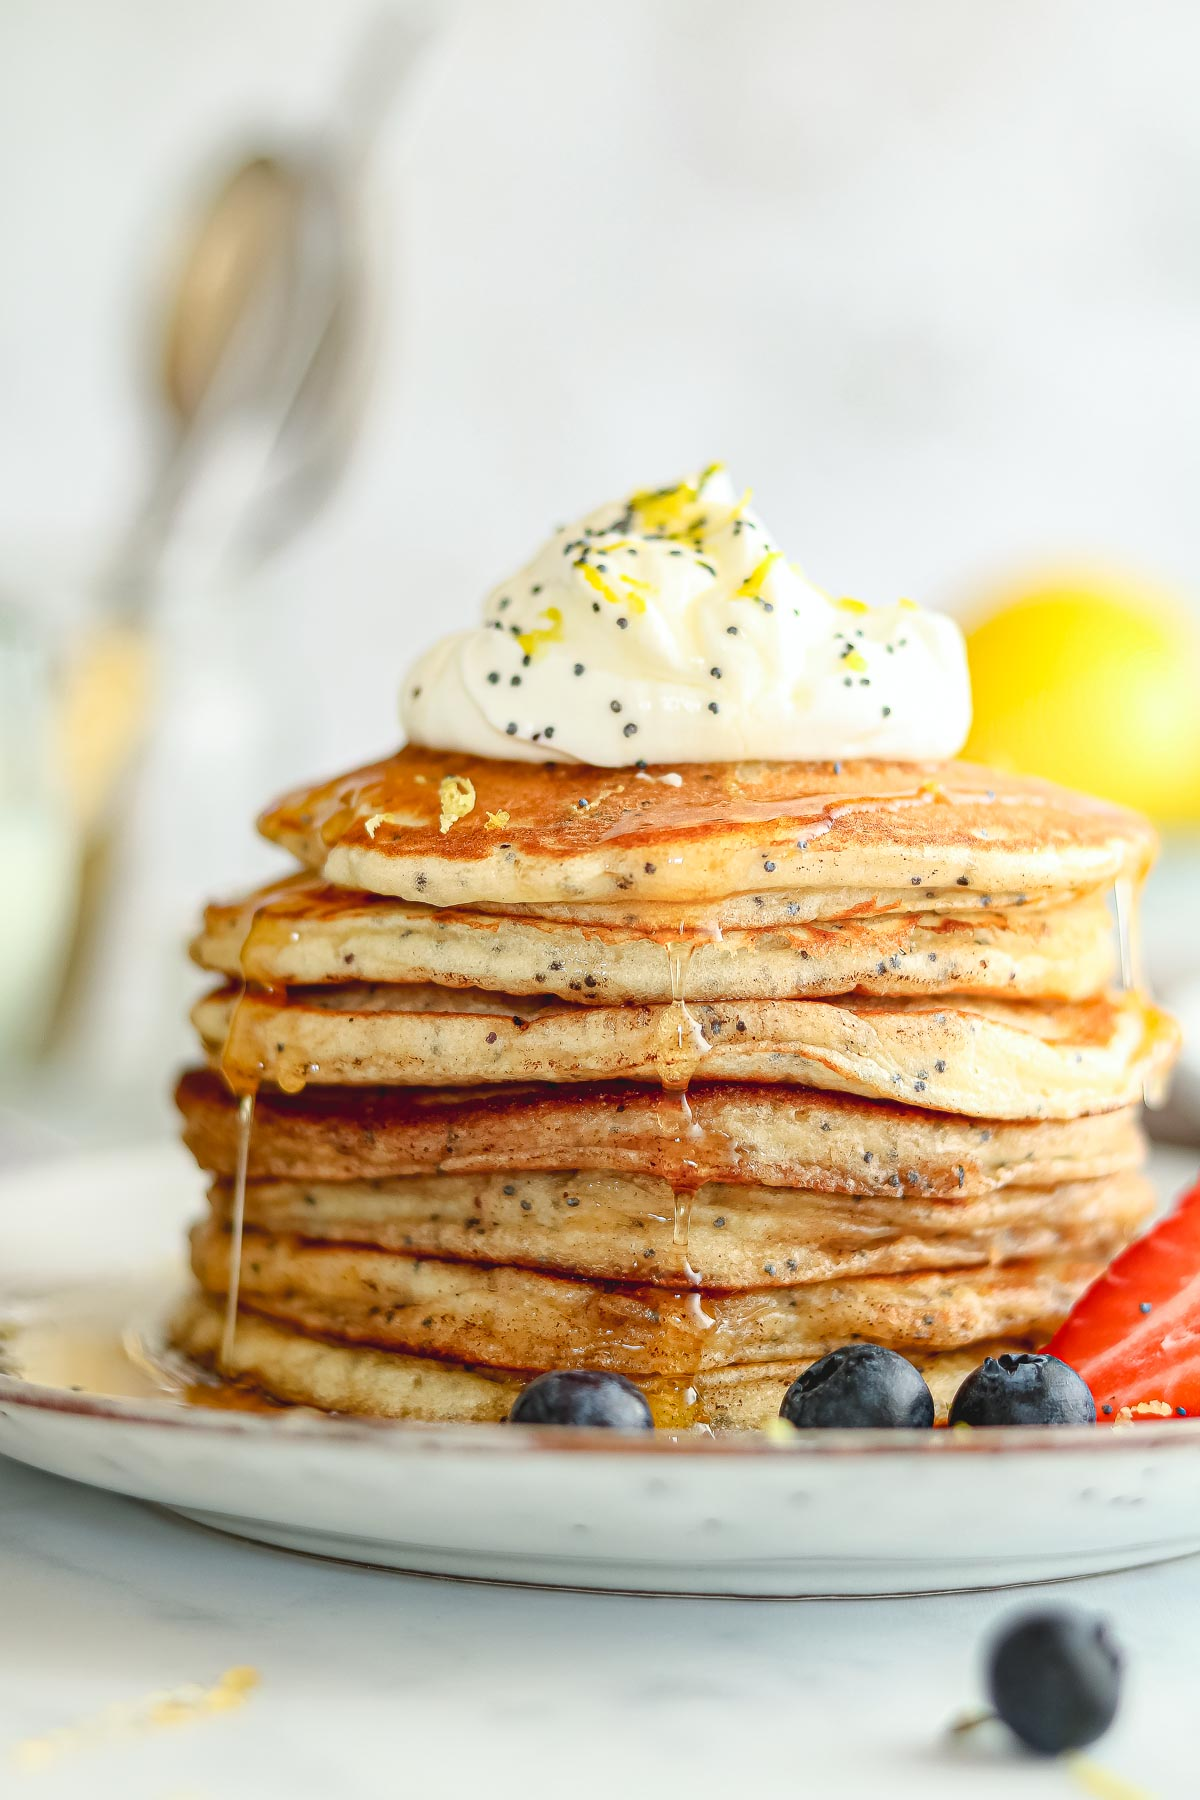 Lemon Buttermilk Pancakes with poppy seeds, yoghurt and strawberries, with maple syrup pour.